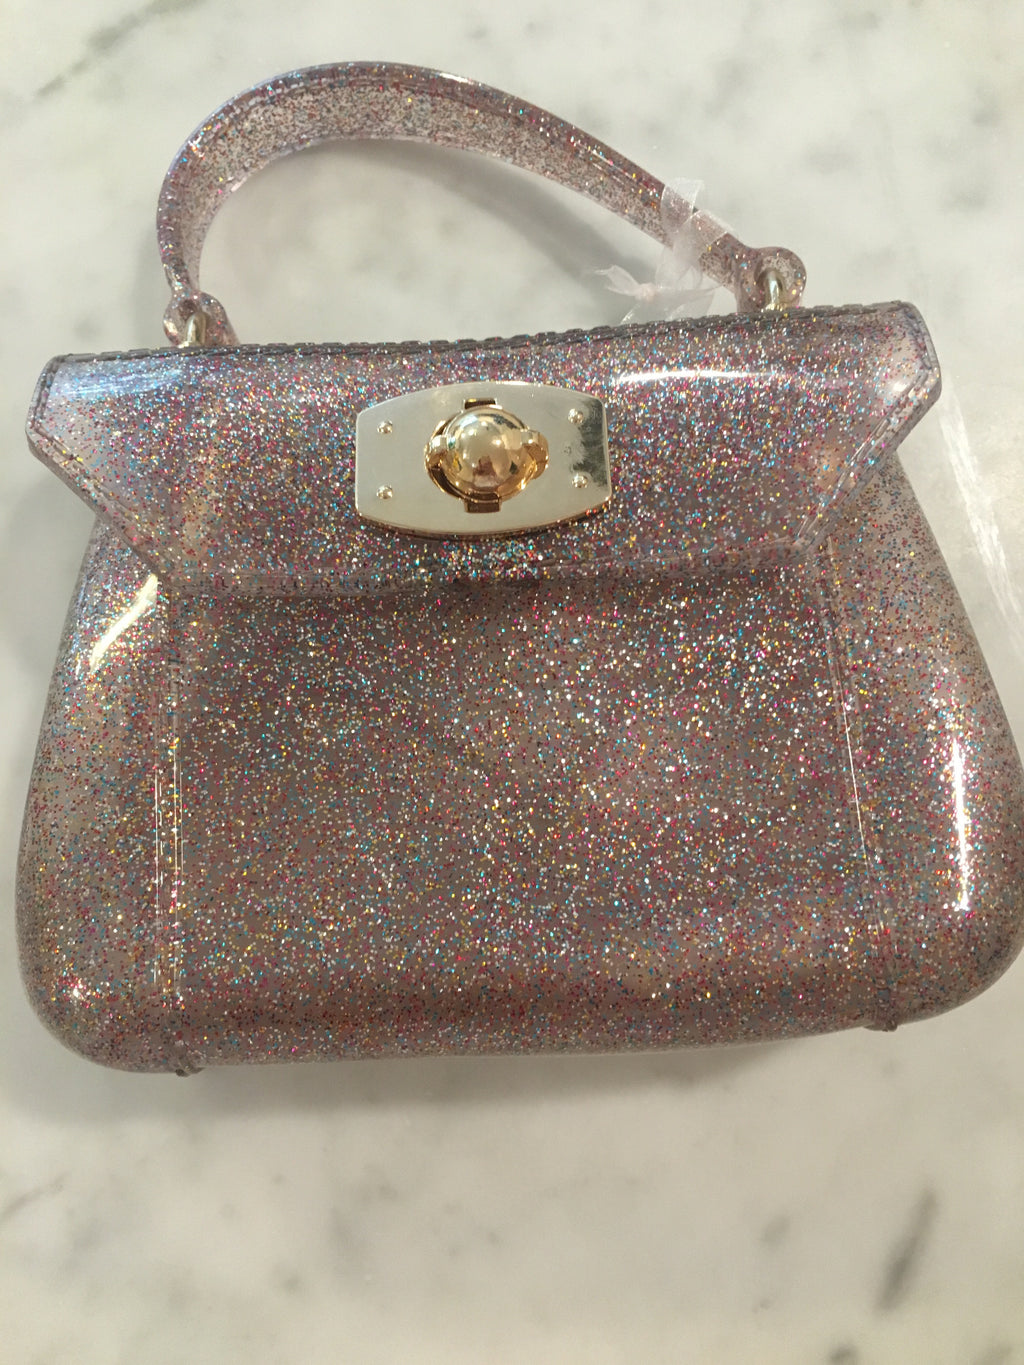 Rainbow Glitter Jelly Purse with Globe Closure